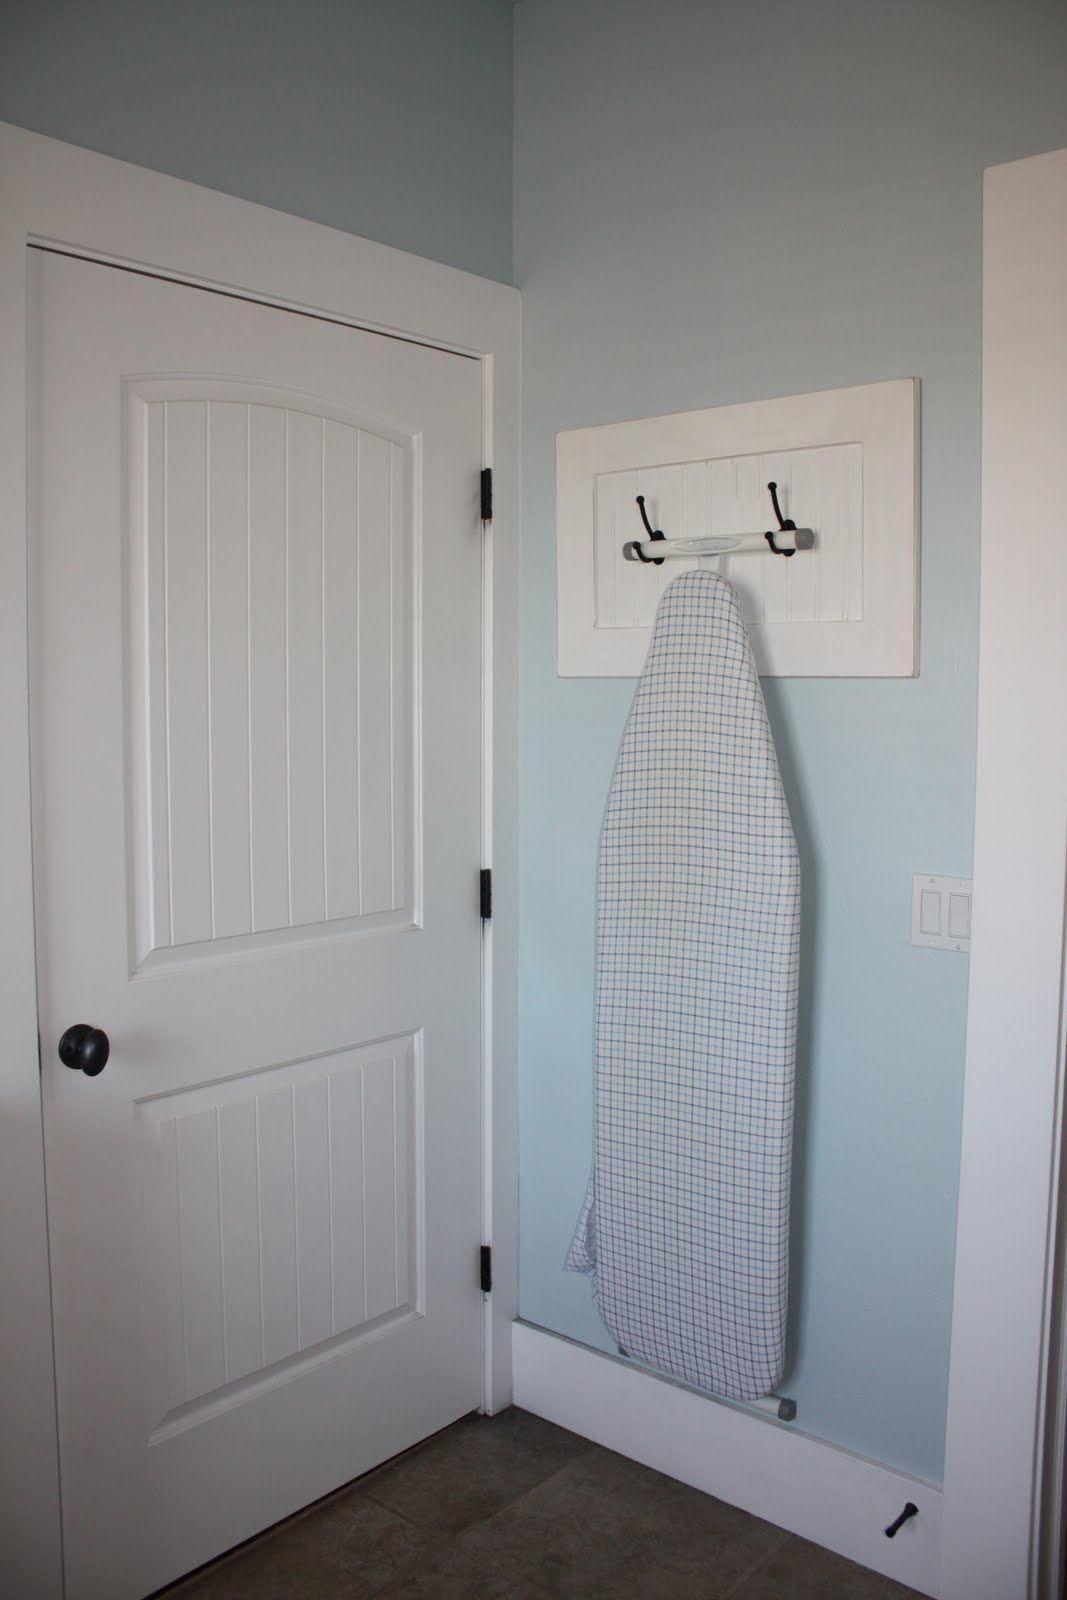 2 robe hooks make easy way to hang an ironing board - I'm going to make this!!!